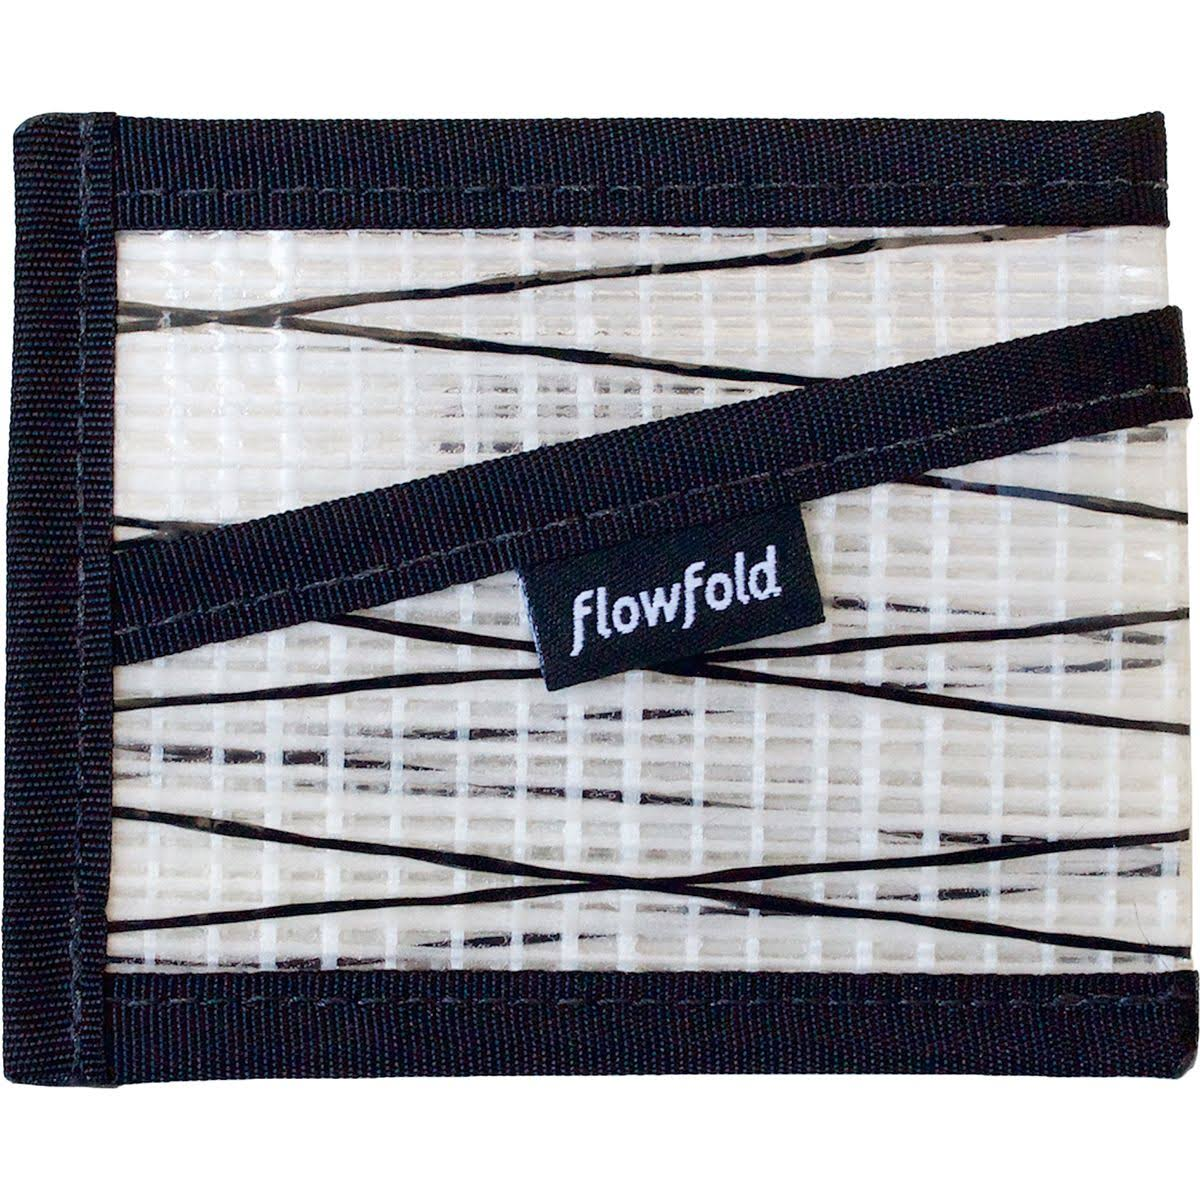 Flowfold Recycled Sailcloth Craftsman Wallet White